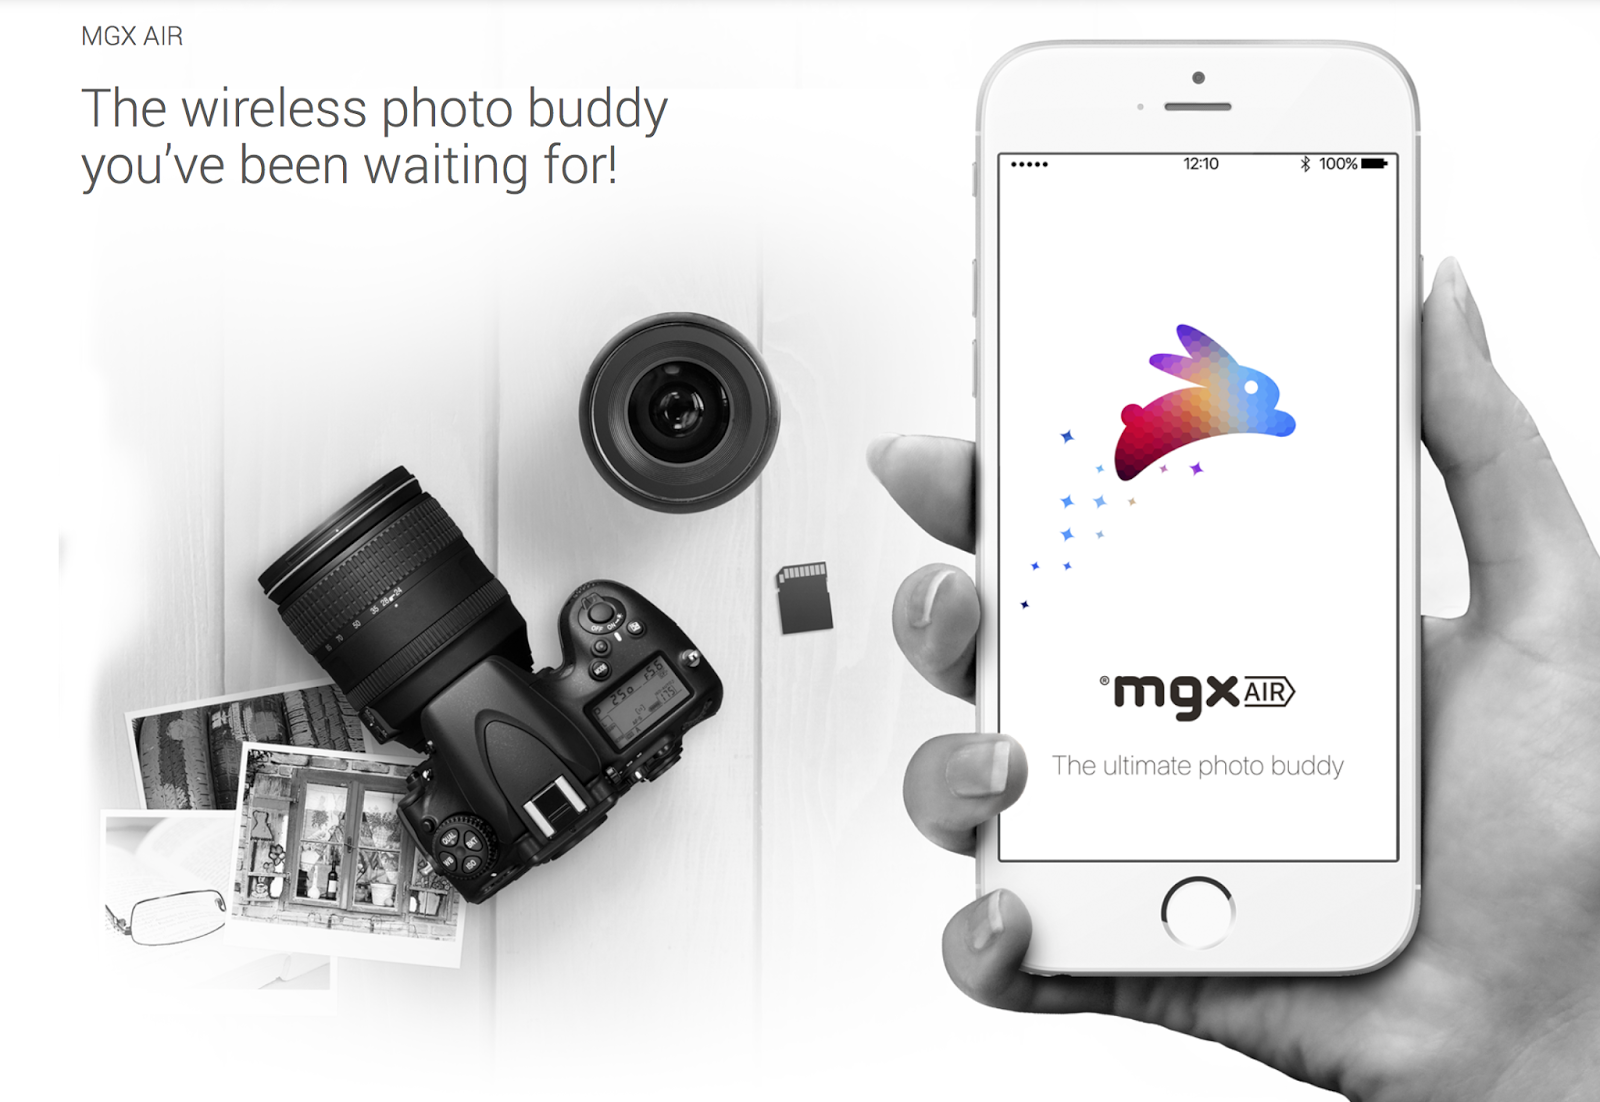 The wireless photo buddy you've been waiting for! | MGX Ahead of photography